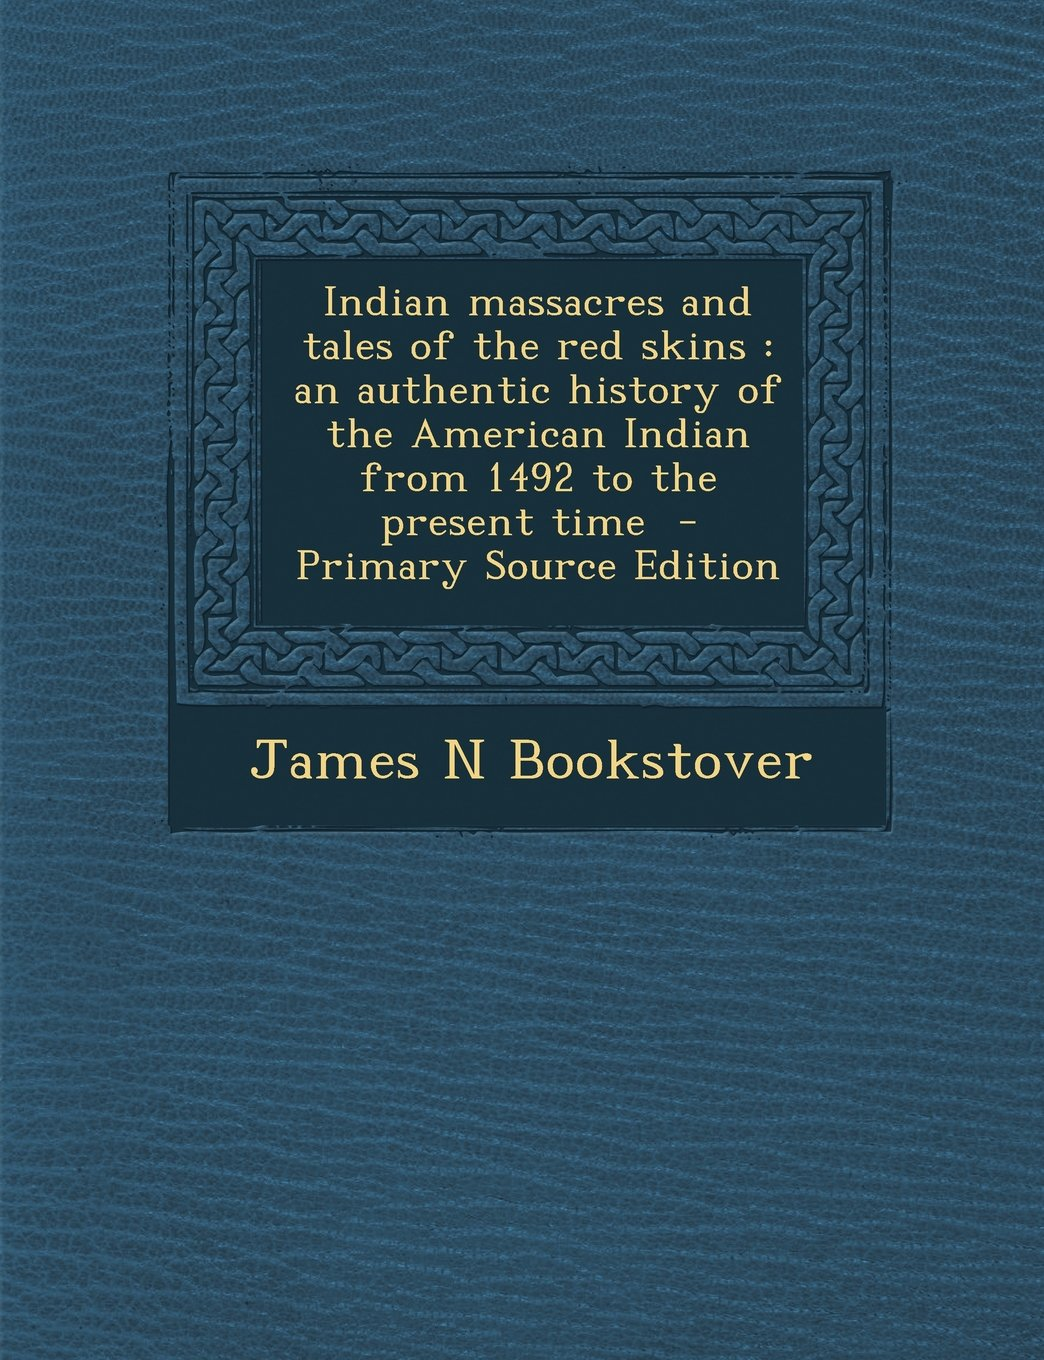 Indian Massacres and Tales of the Red Skins: An Authentic History of the American Indian from 1492 to the Present Time - Primary Source Edition pdf